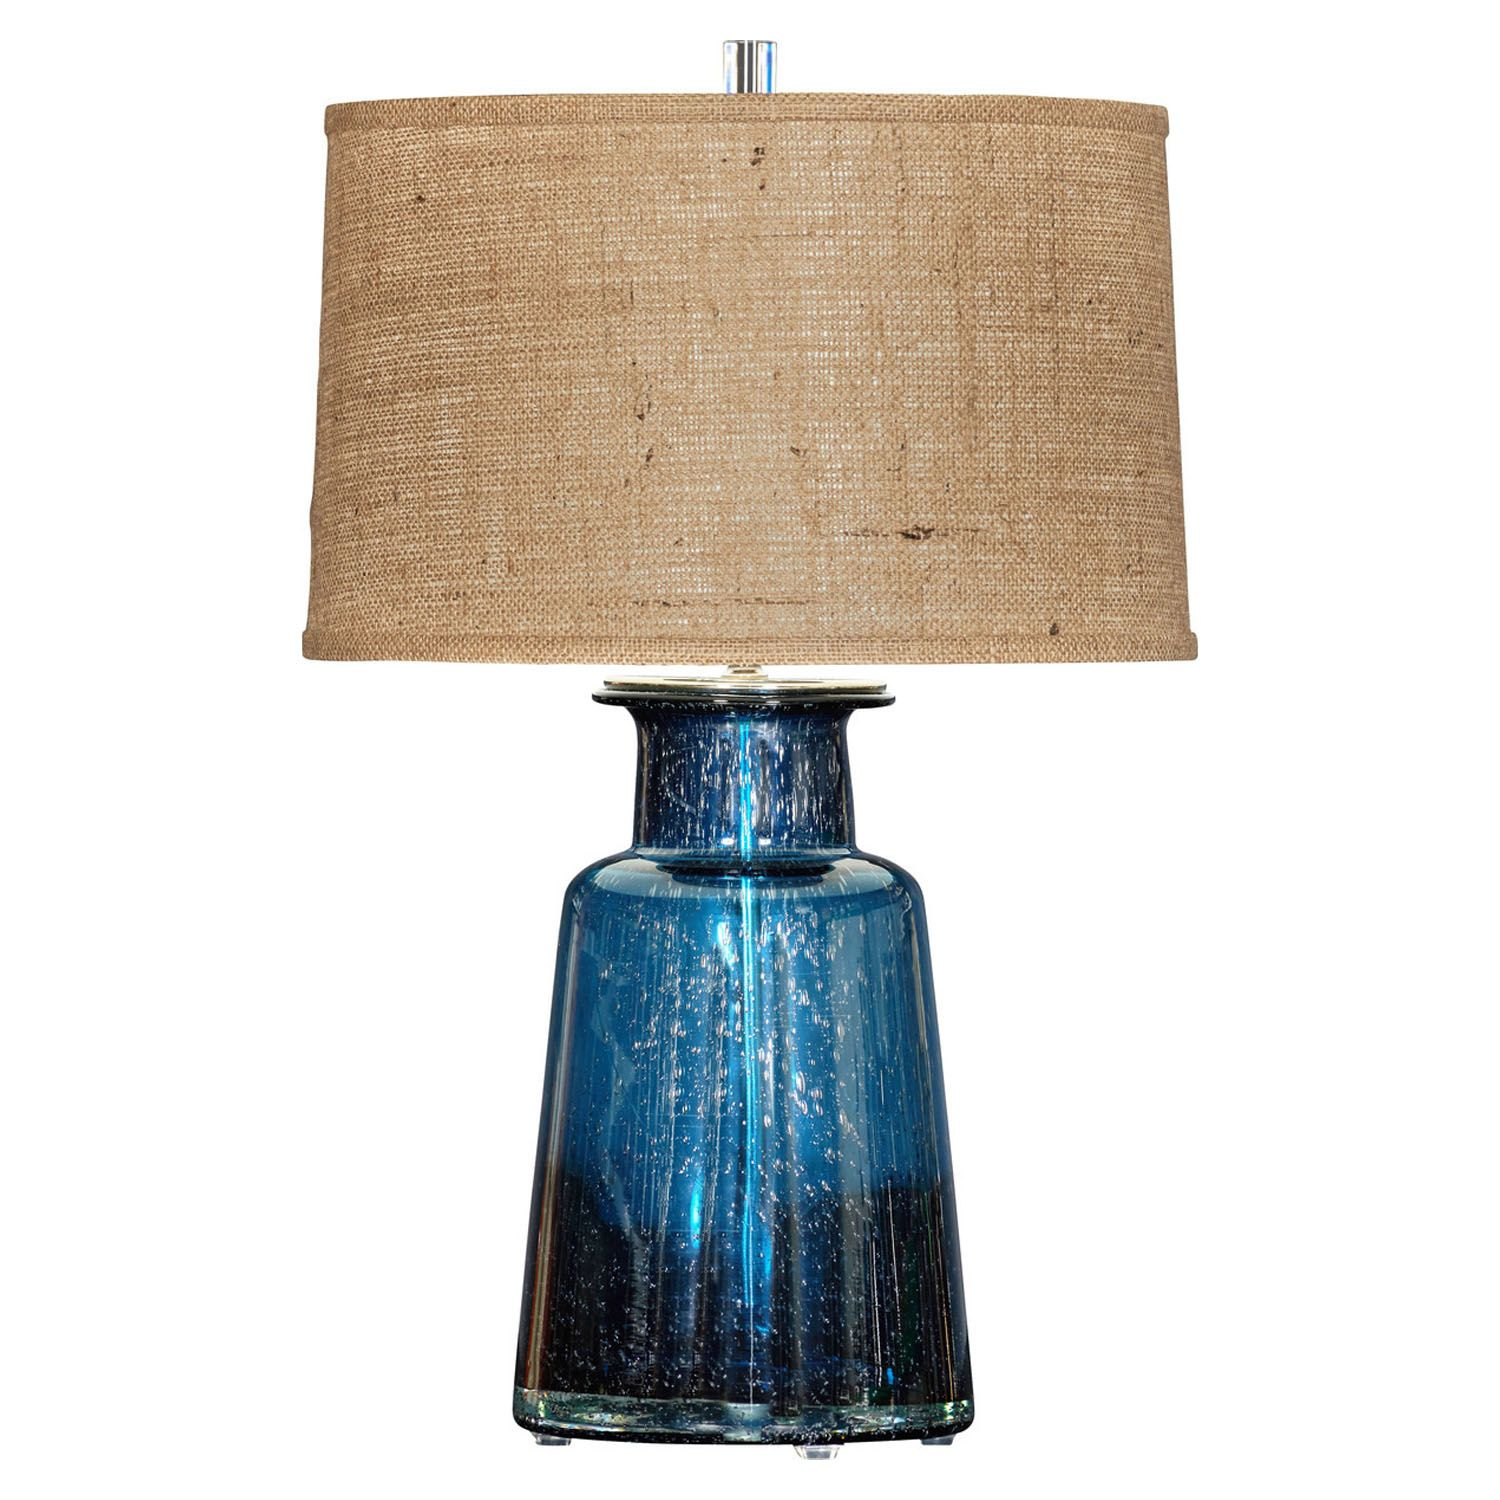 Show details for laguna blue table lamp downstairs pinterest show details for laguna blue table lamp geotapseo Choice Image